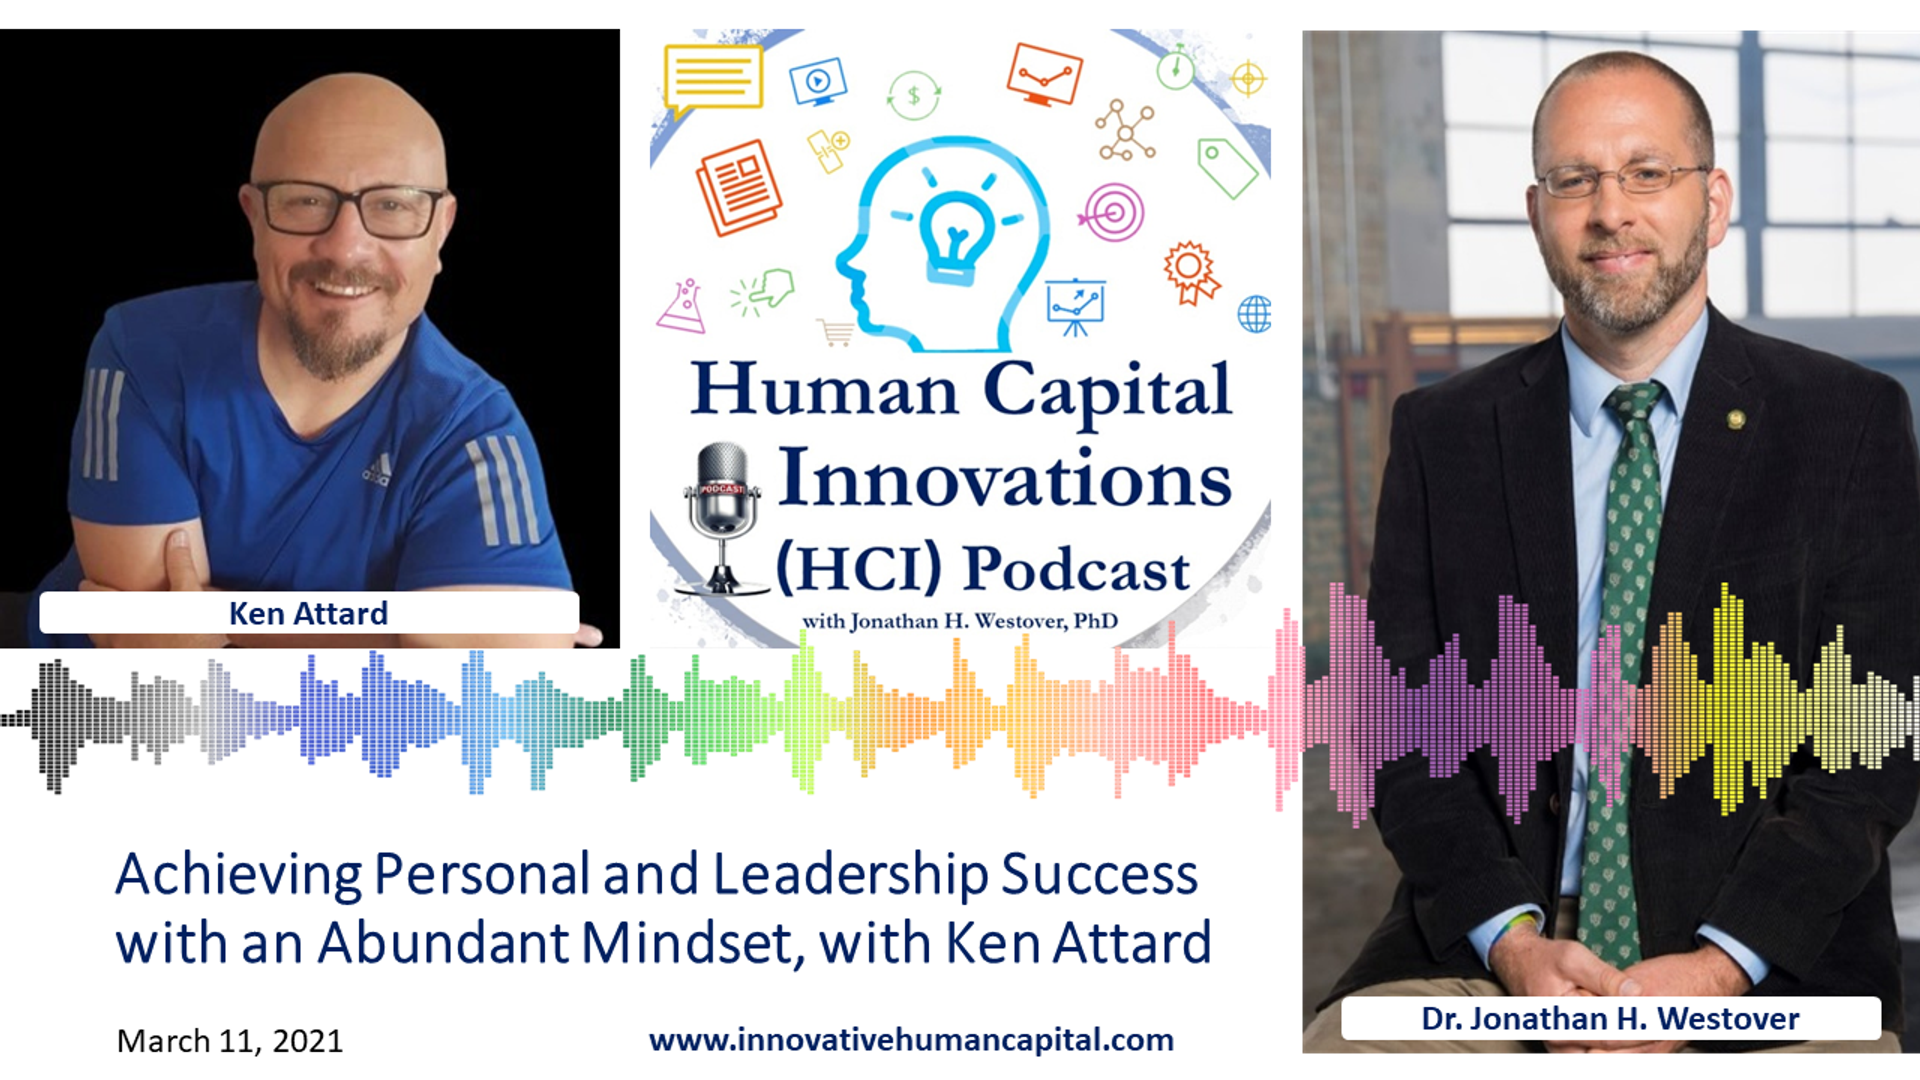 Achieving Personal and Leadership Success with an Abundant Mindset